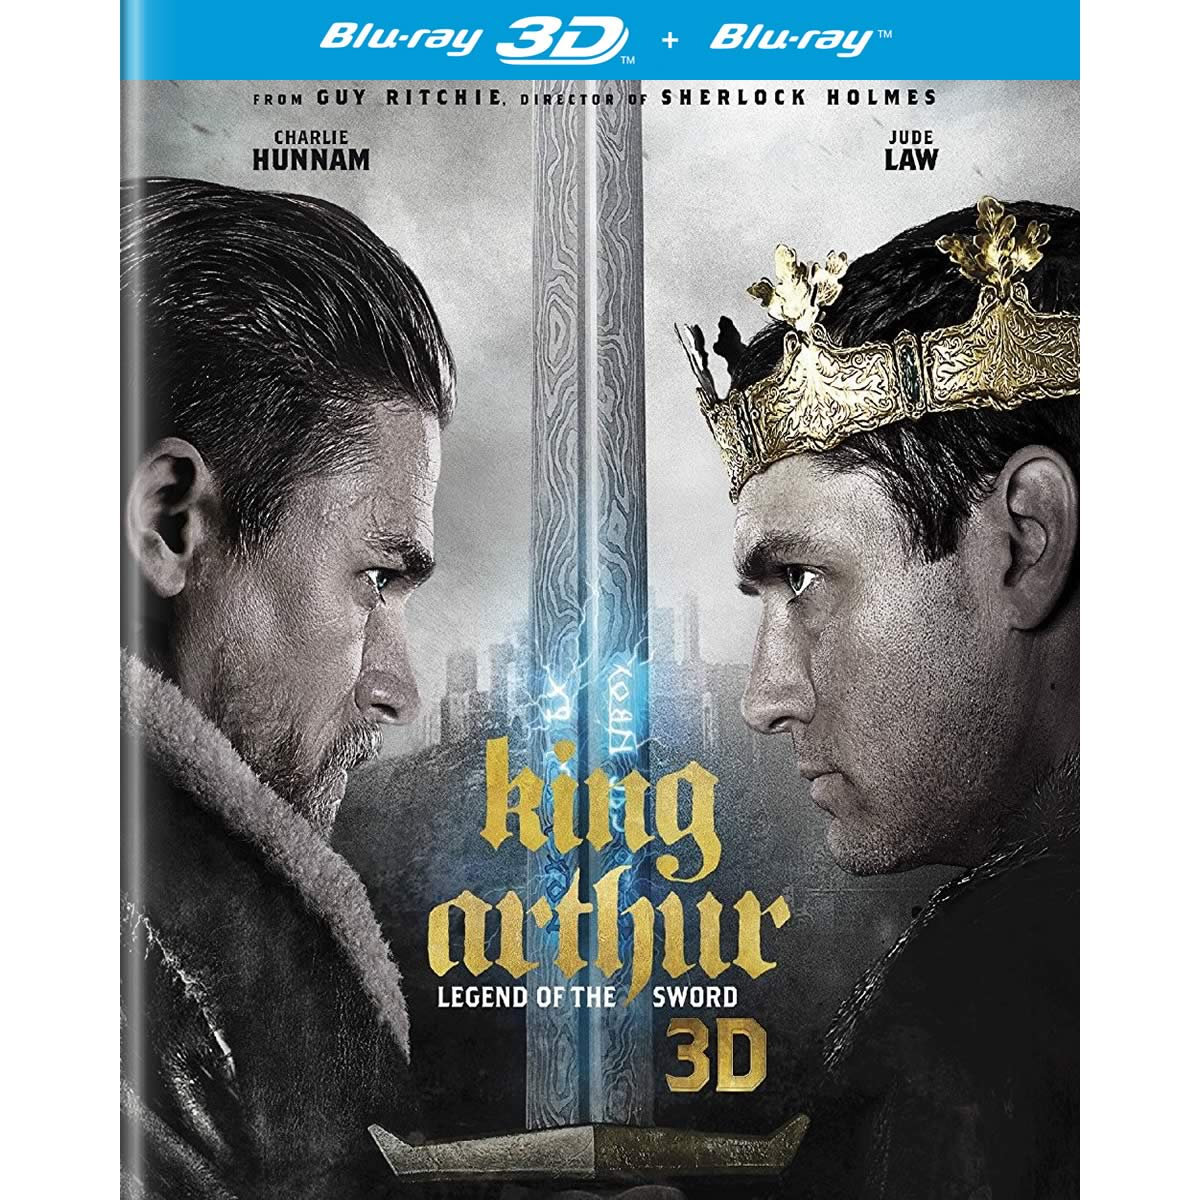 KING ARTHUR: LEGEND OF THE SWORD 3D (BLU-RAY 3D/2D)